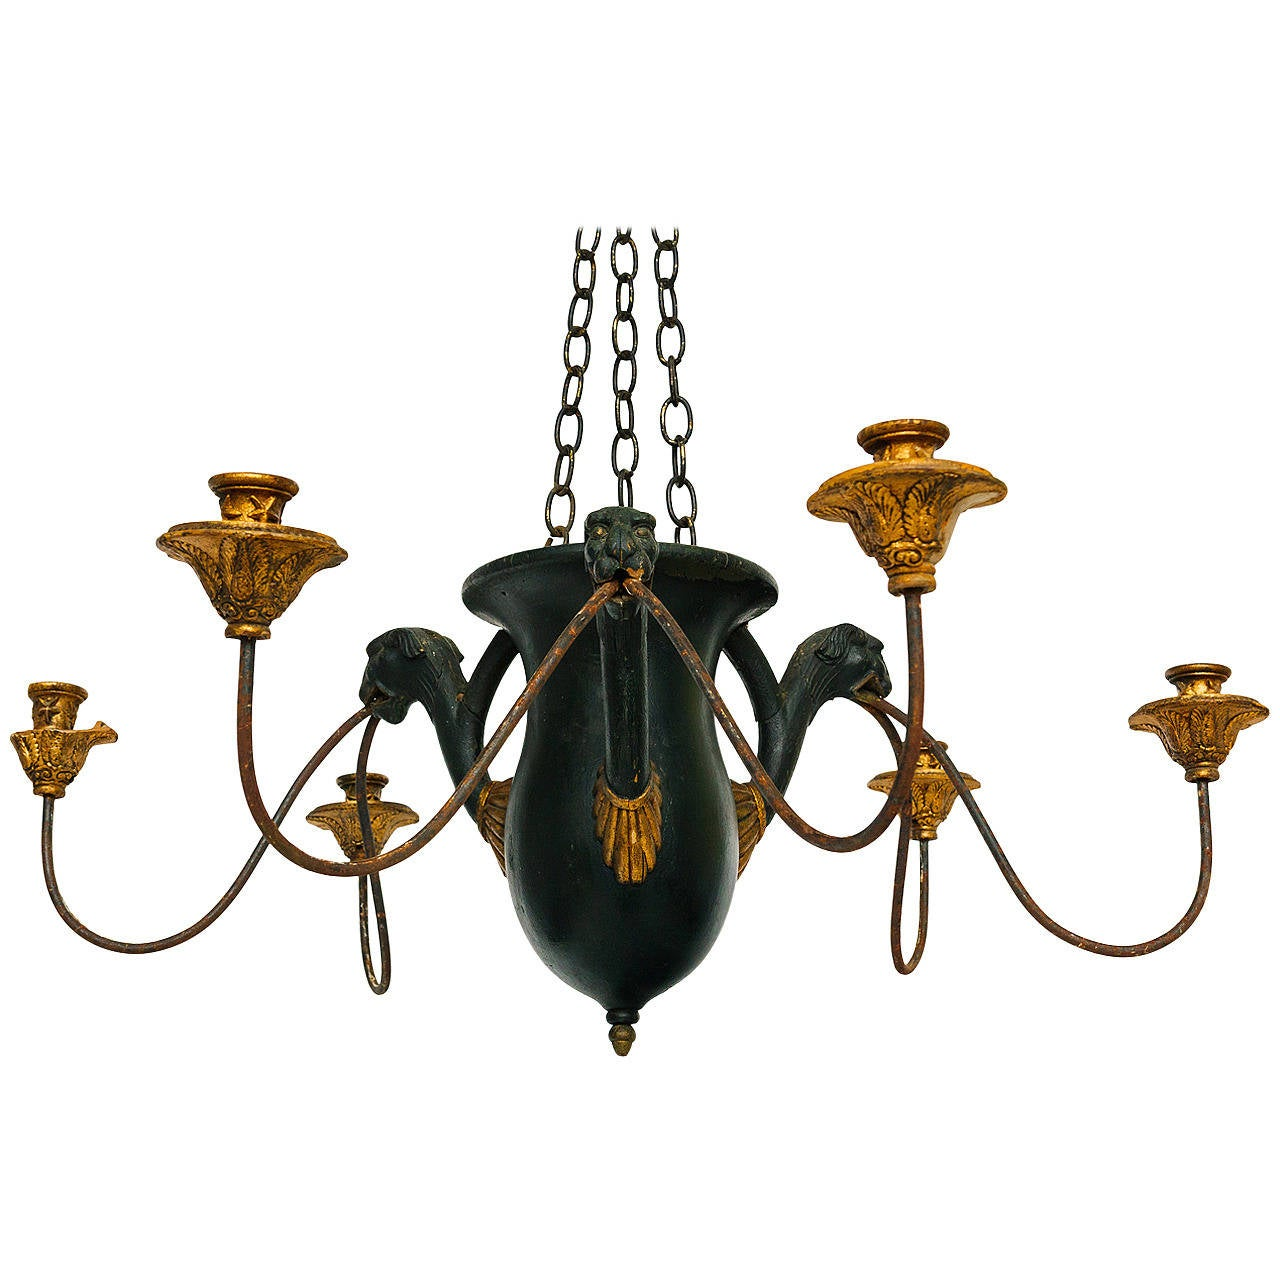 Rare French Carved Wood Panther Chandelier At 1stdibs